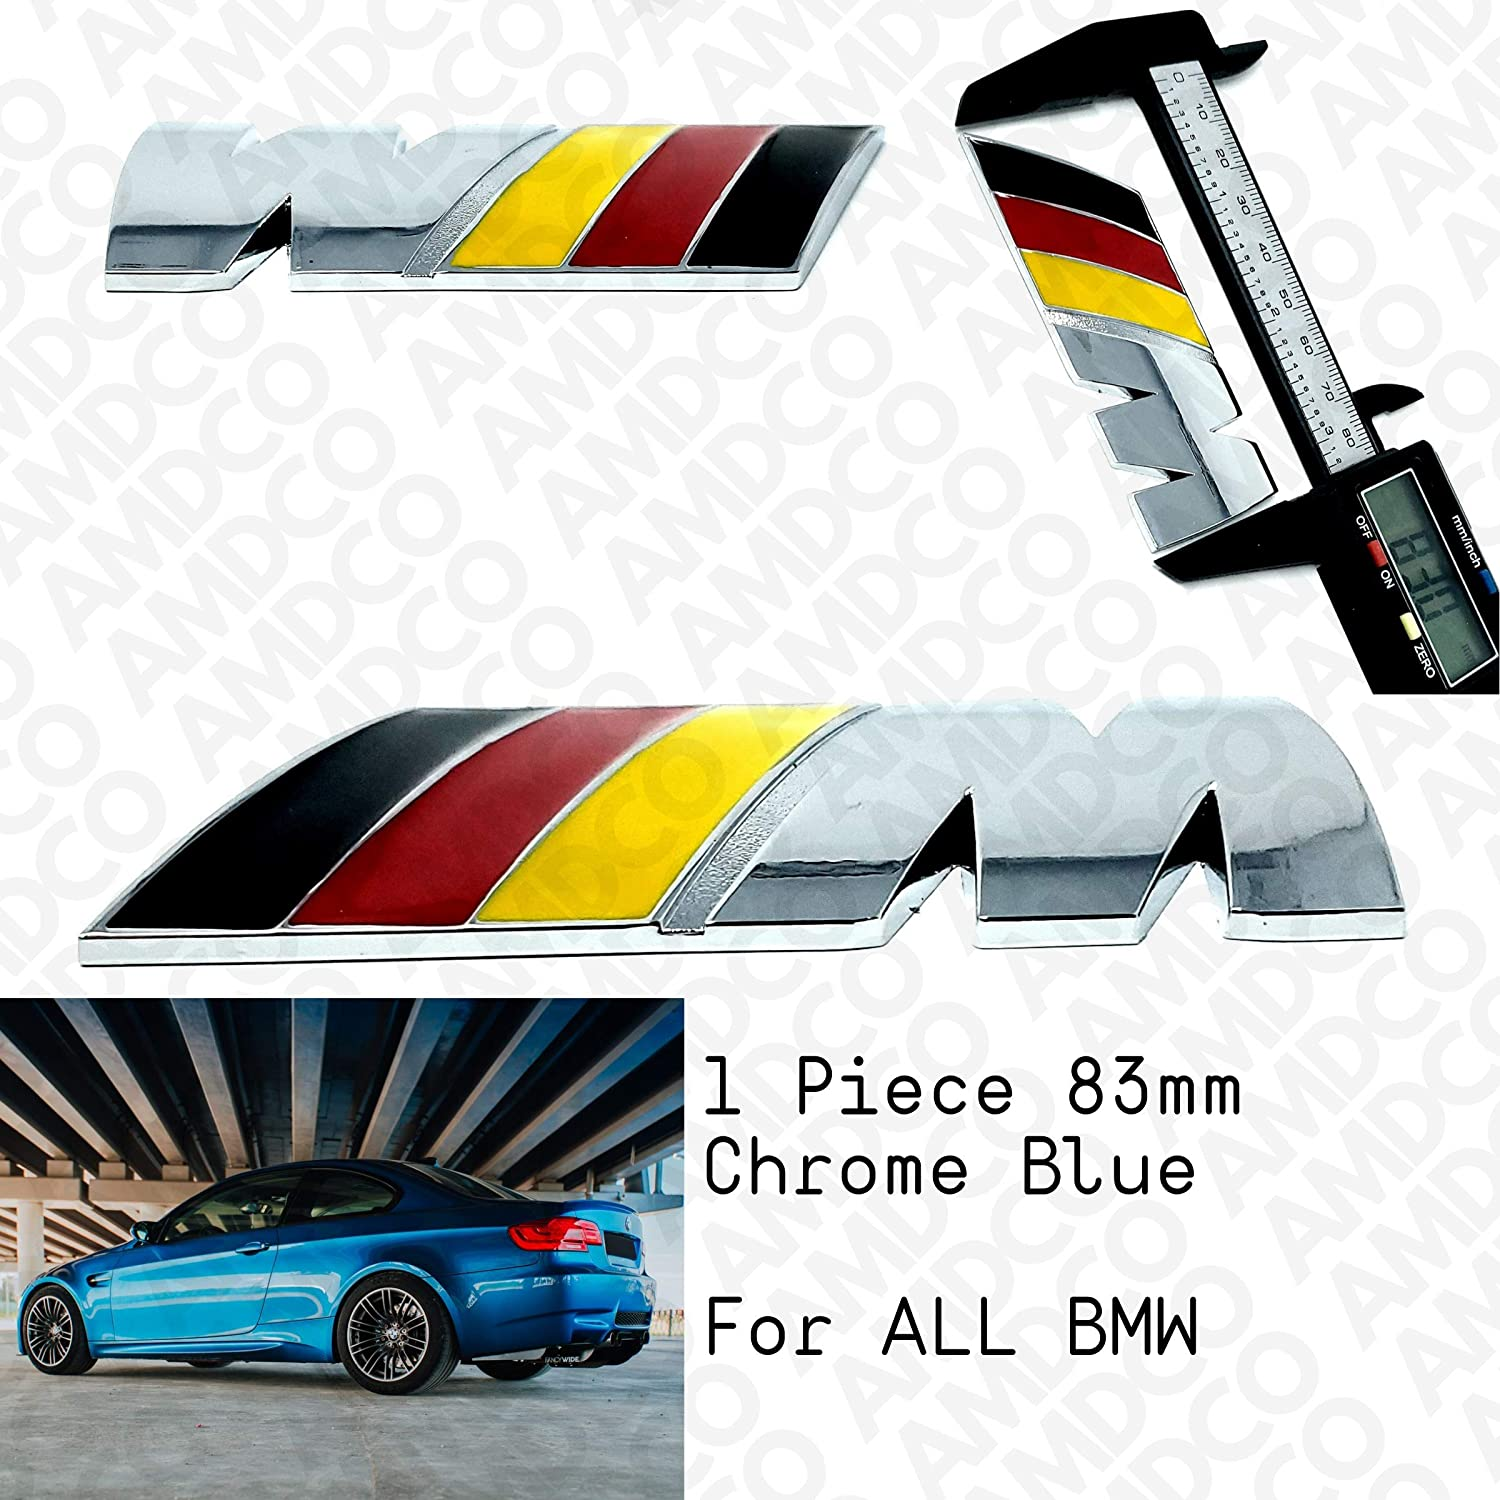 AMD pack of 1 M CHROME Emblem Badge Stickers Decals with Strong 3M Includes instructions MEASURE Before Purchase Fitment Top Quality fit For BIMMER 3 series 5 6 4 2 X5 X3 X6 X2 etc CHROME RED